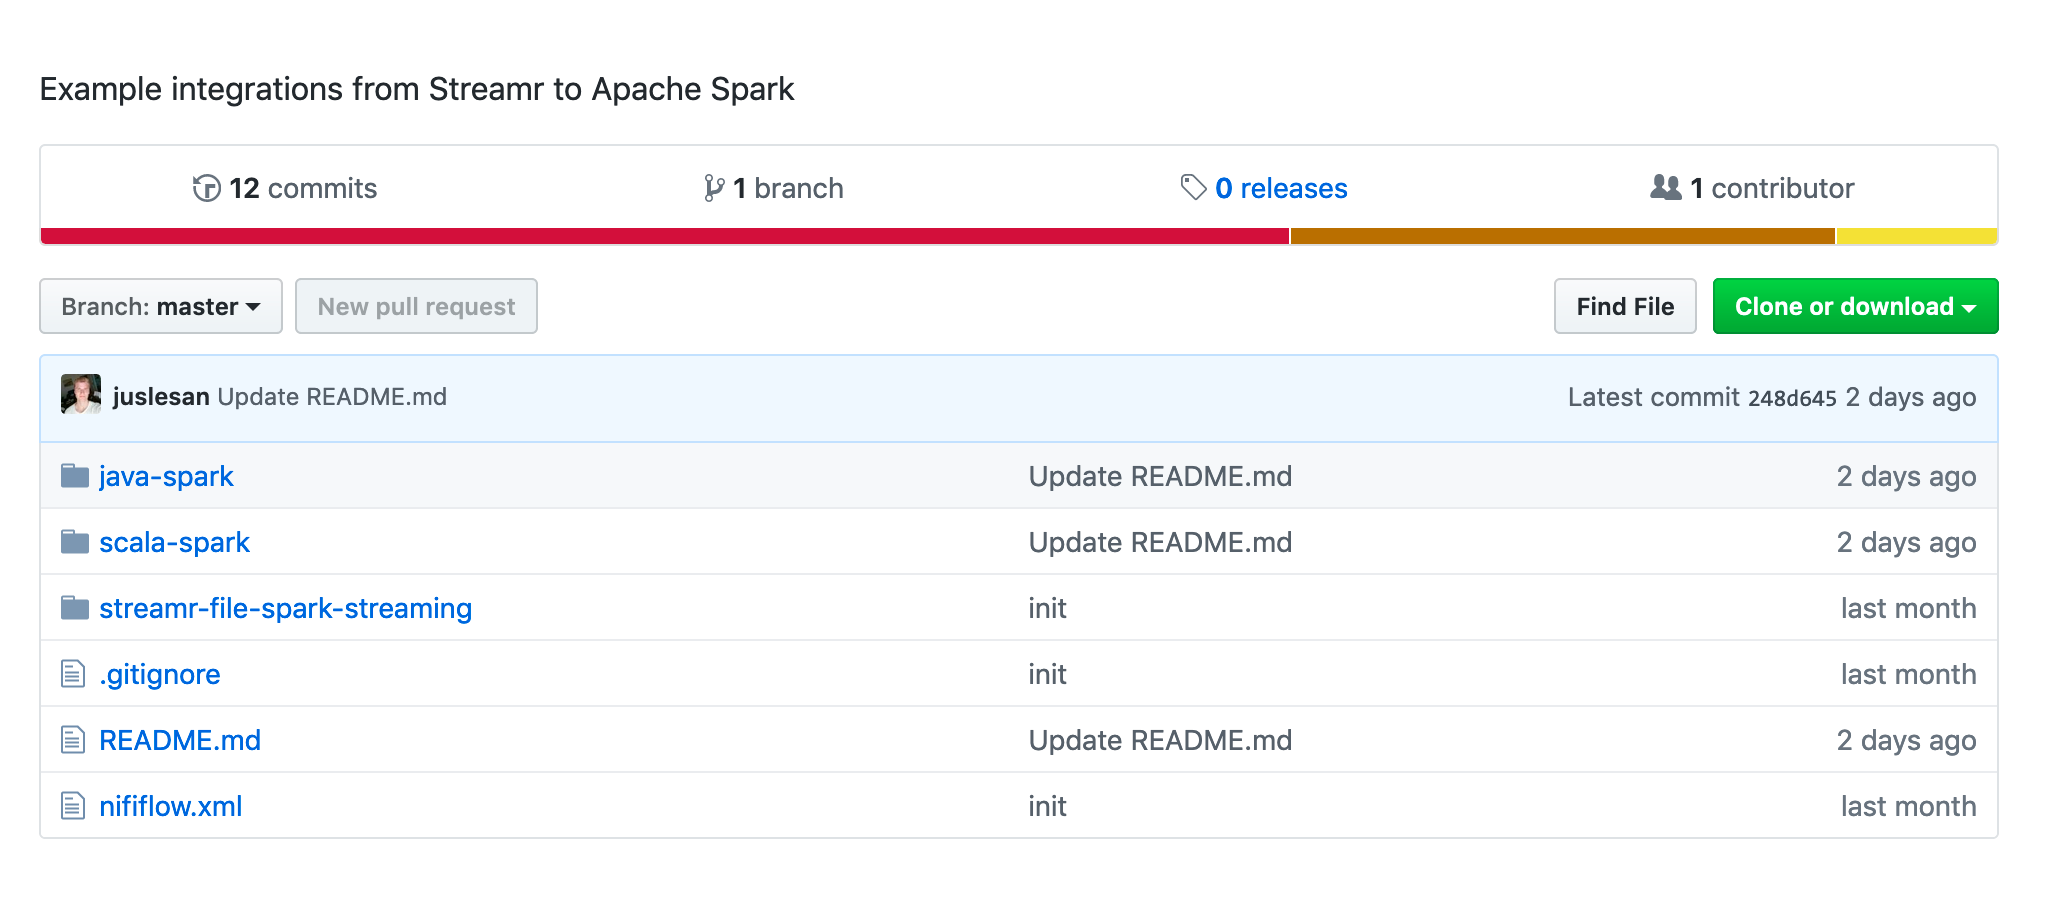 Integrating Streamr with Apache Spark - News from Streamr - Medium